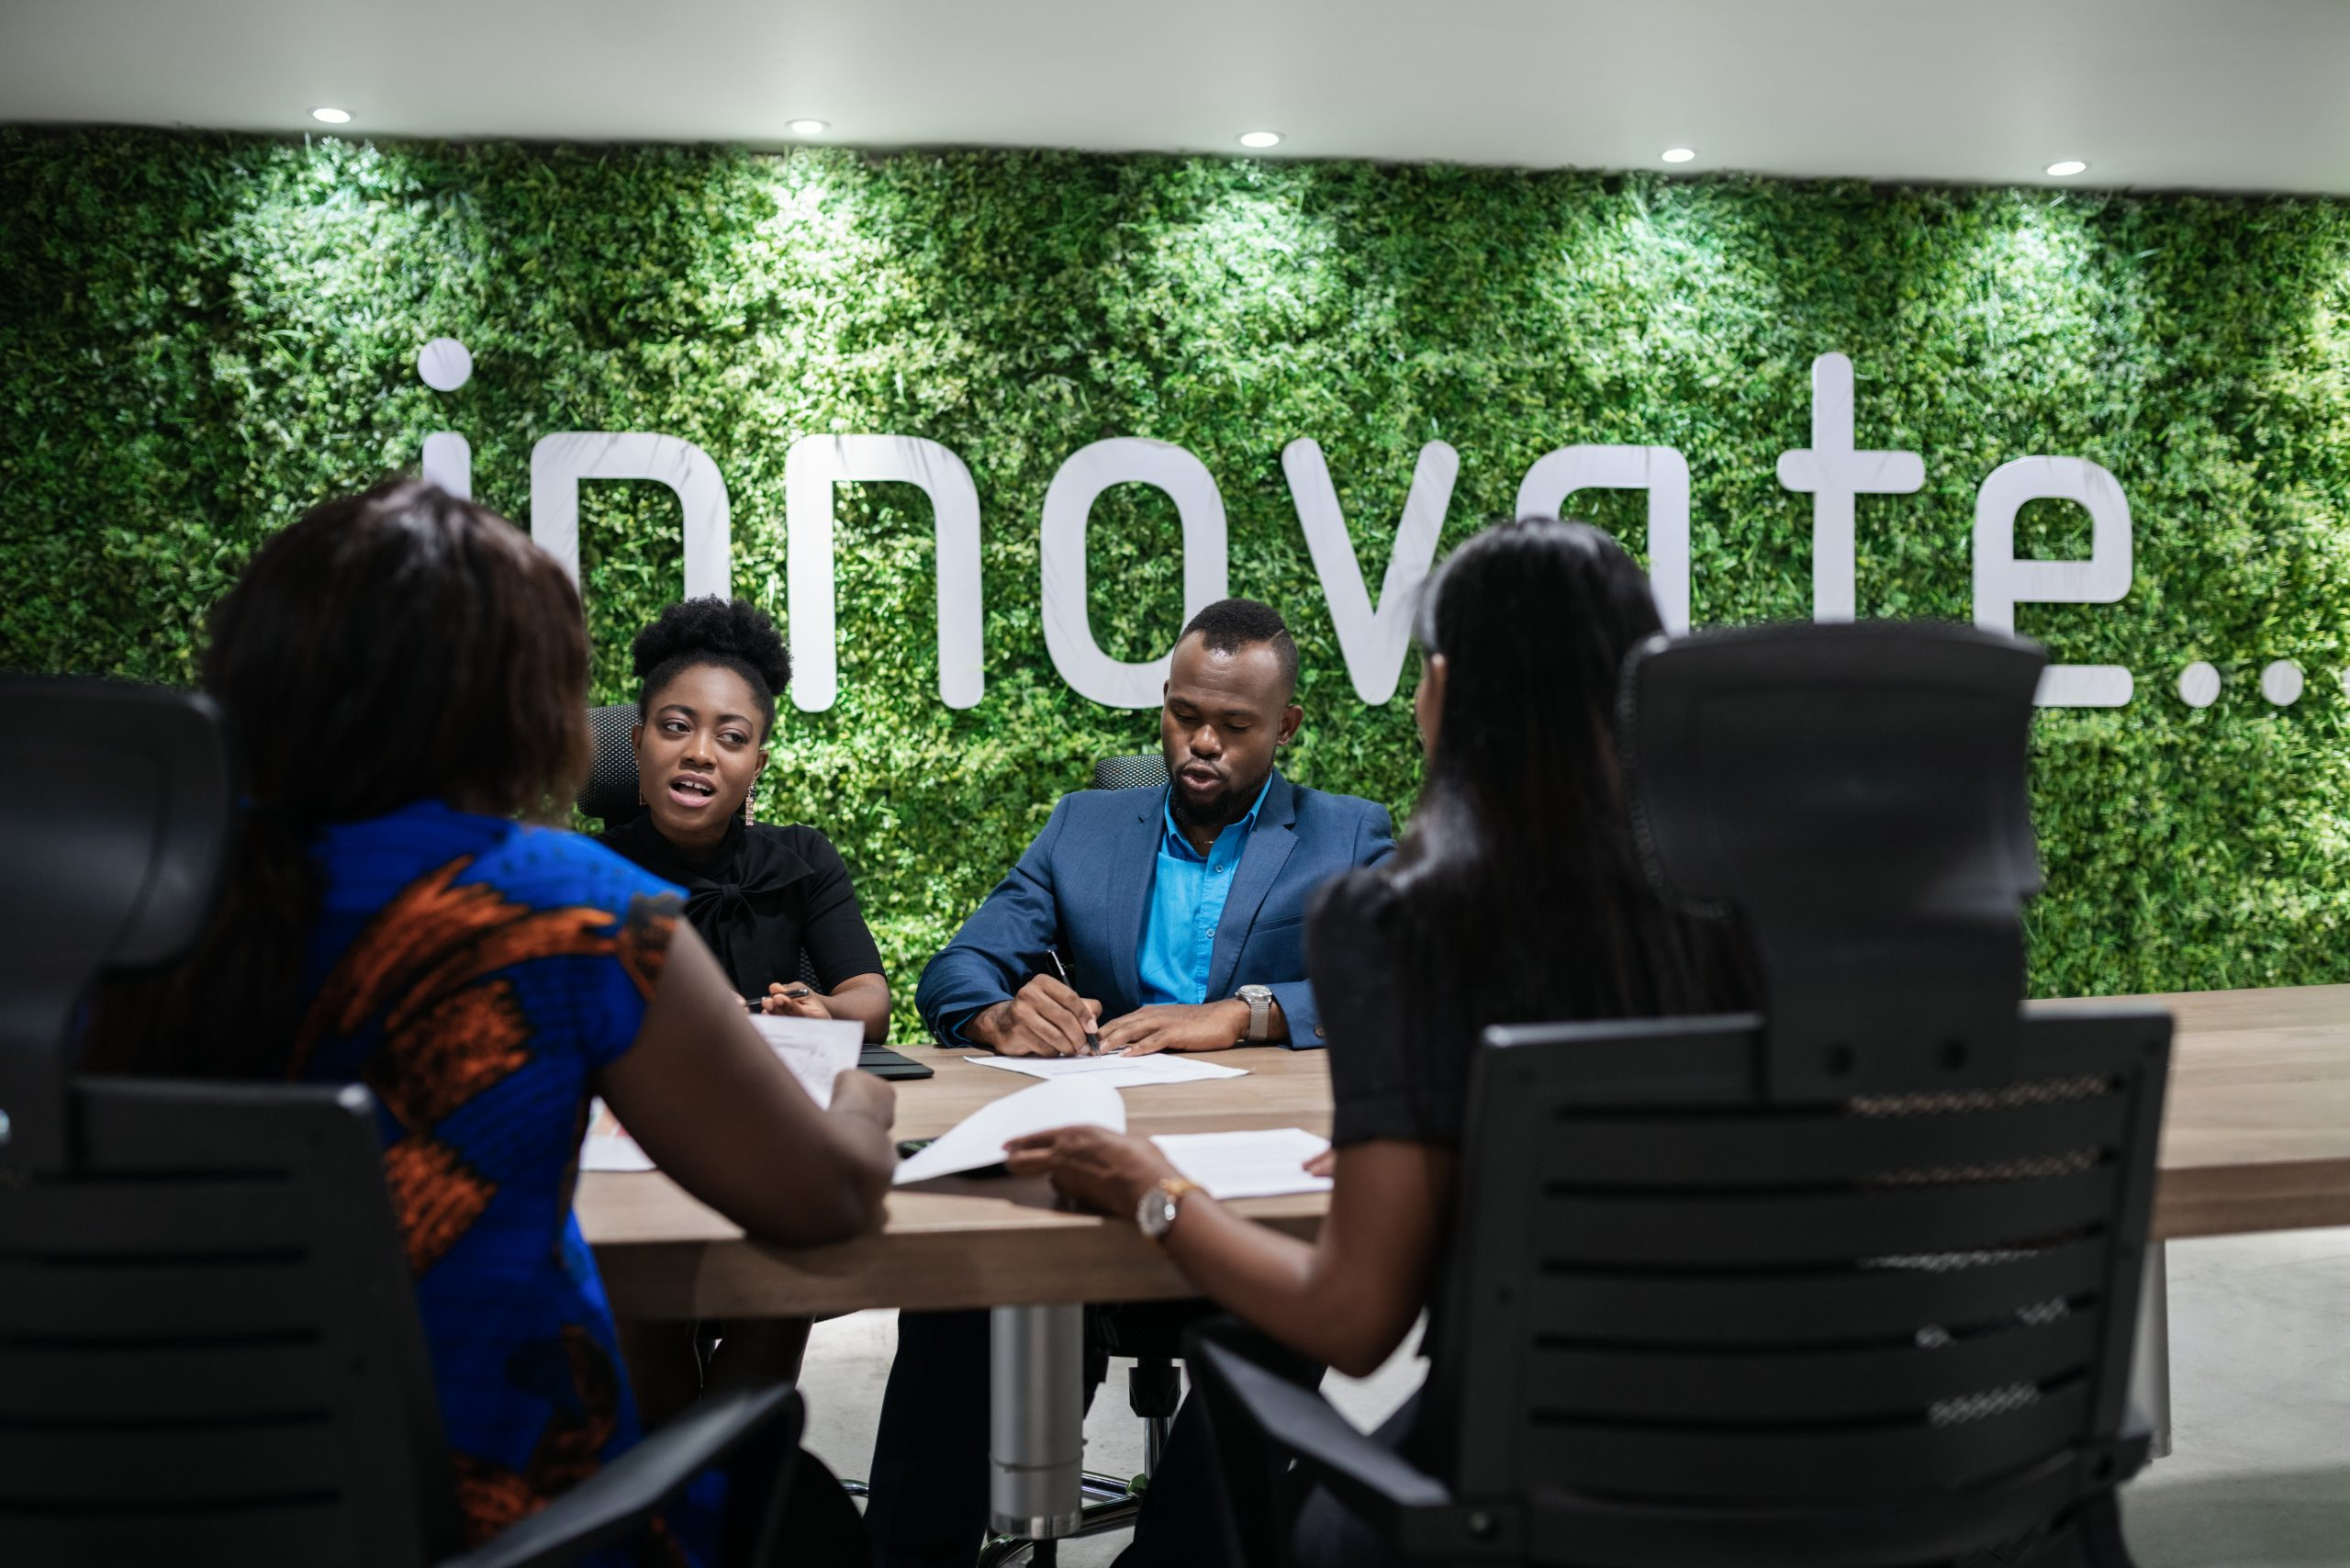 Young African businesswoman discussing work with a group of colleagues during a meeting around a boardroom table in an office